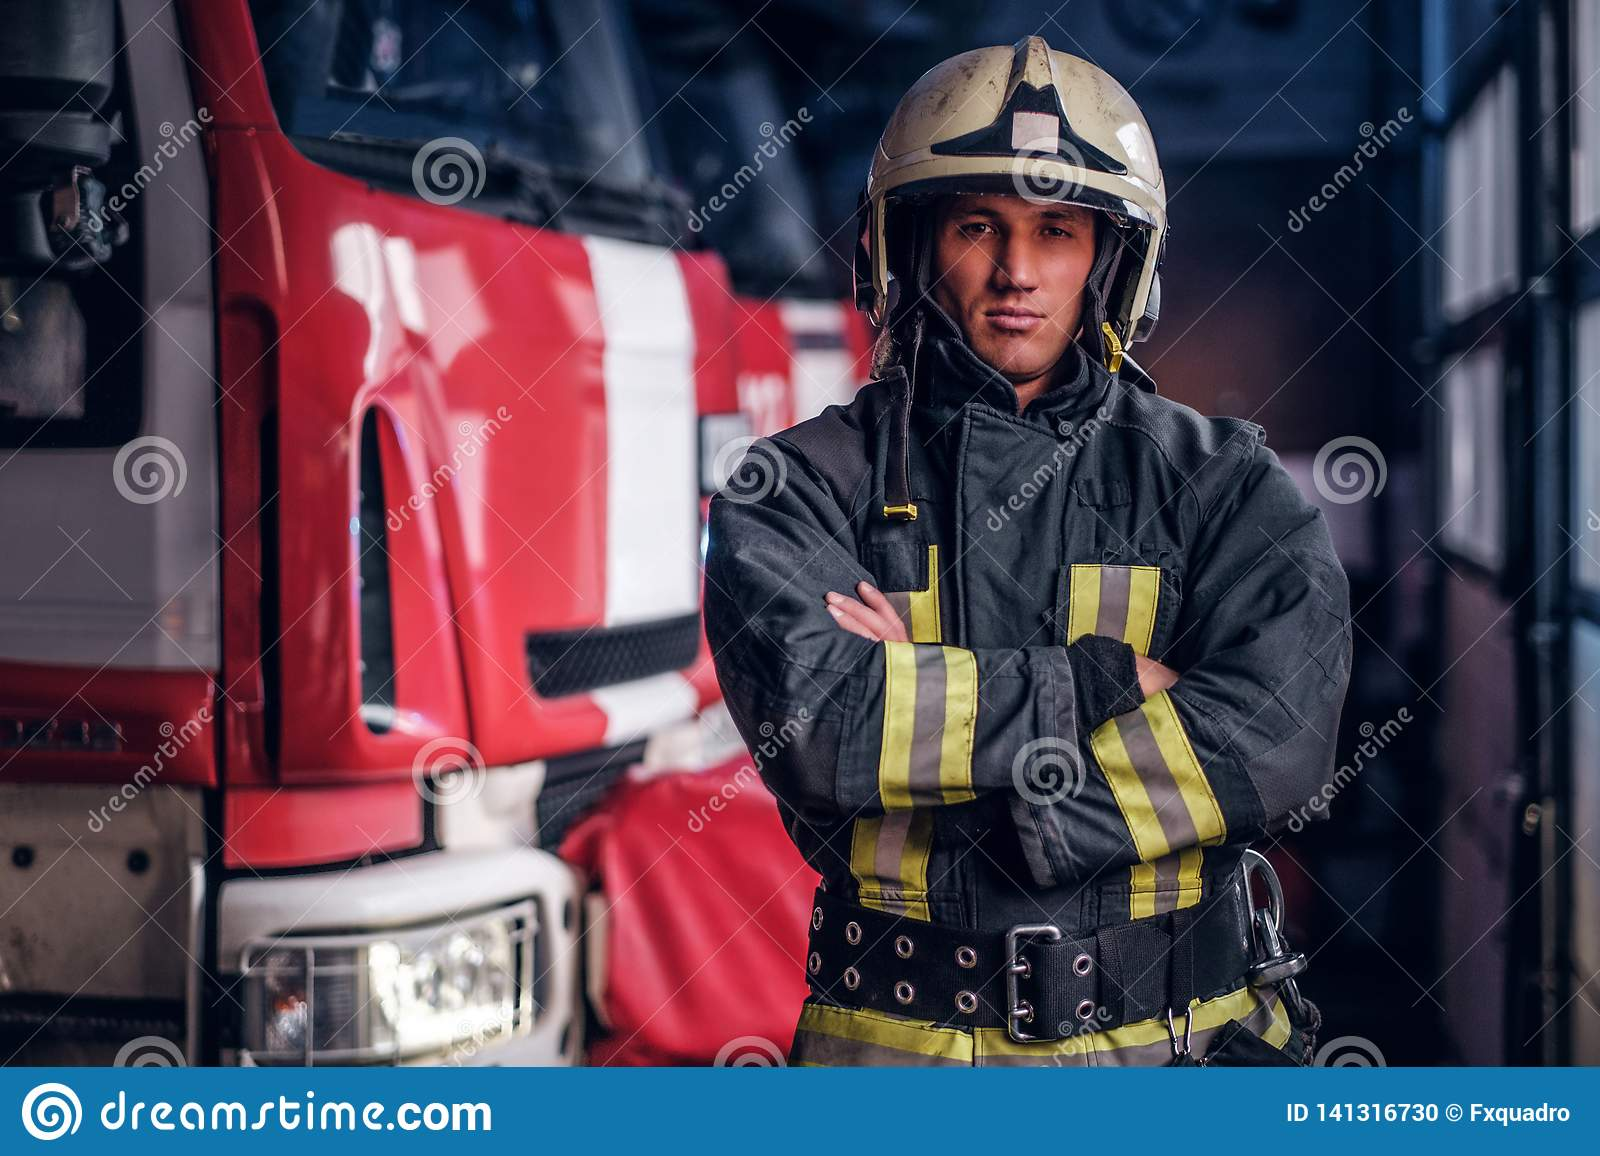 A confident fireman wearing protective uniform standing next to a fire engine in a garage of a fire department, crossed